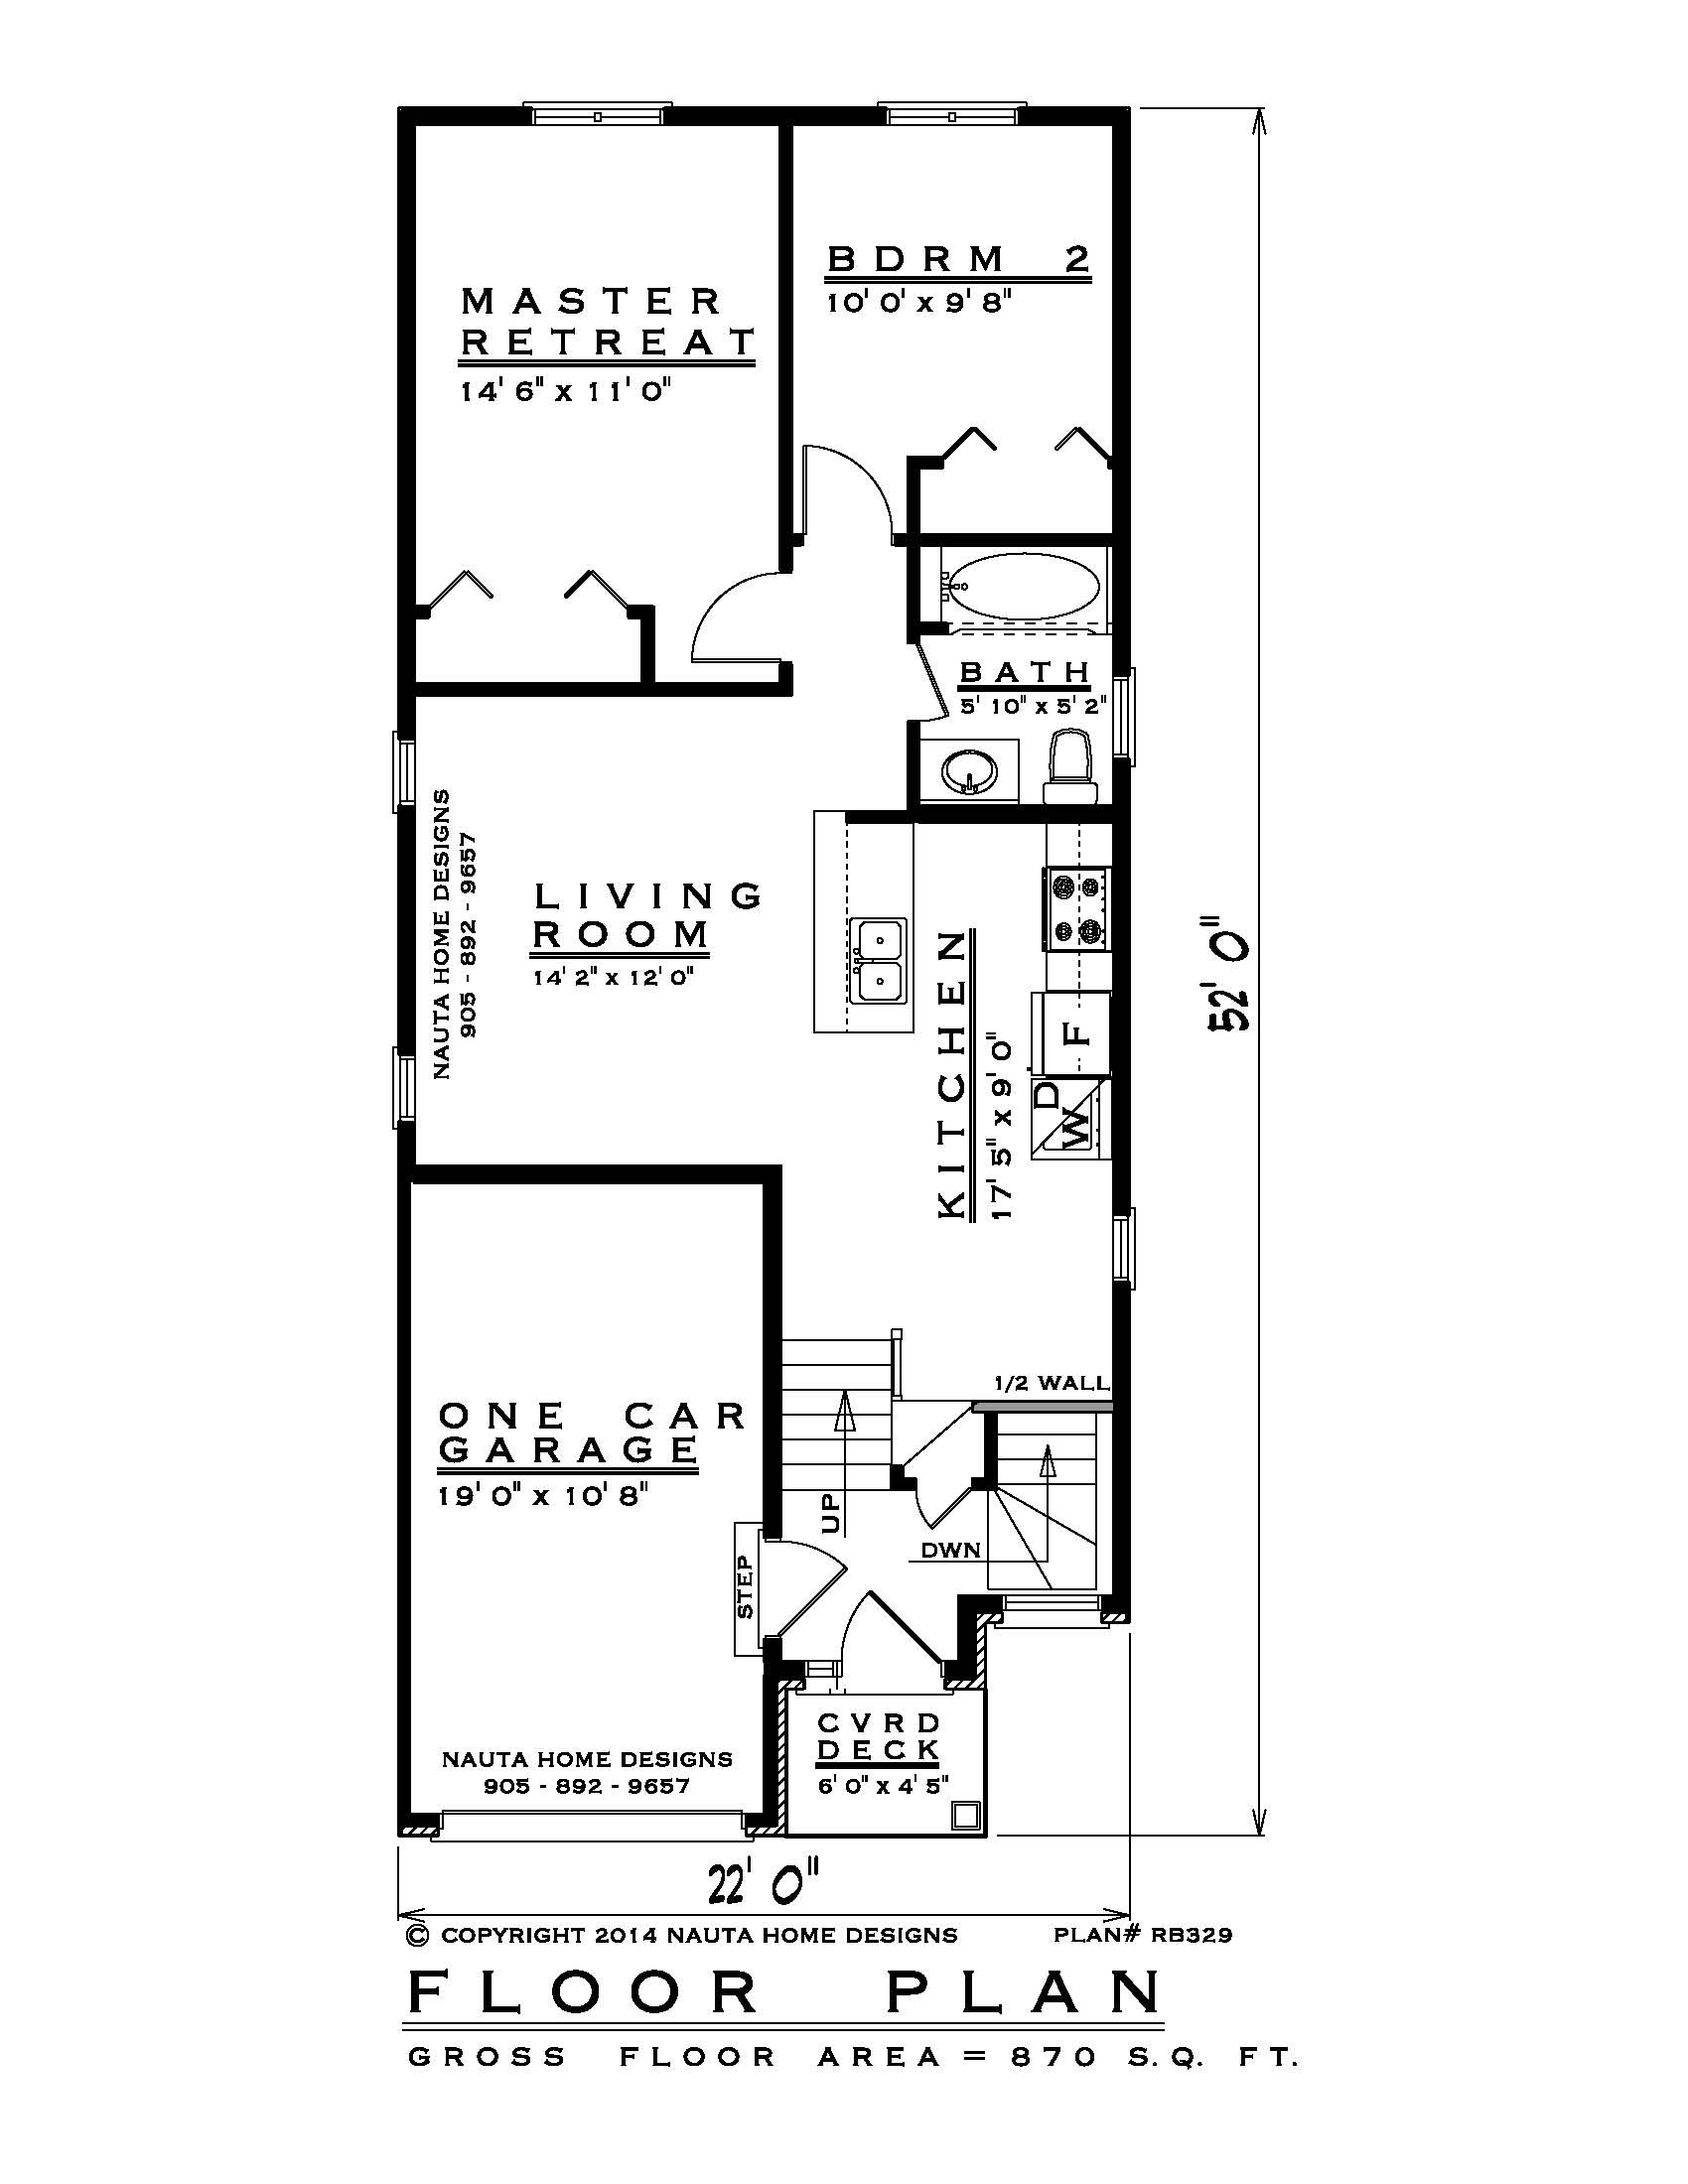 House Plans Canada with Photos Lovely Raised Bungalow House Plan Rb329 Floor Plan Nauta Home